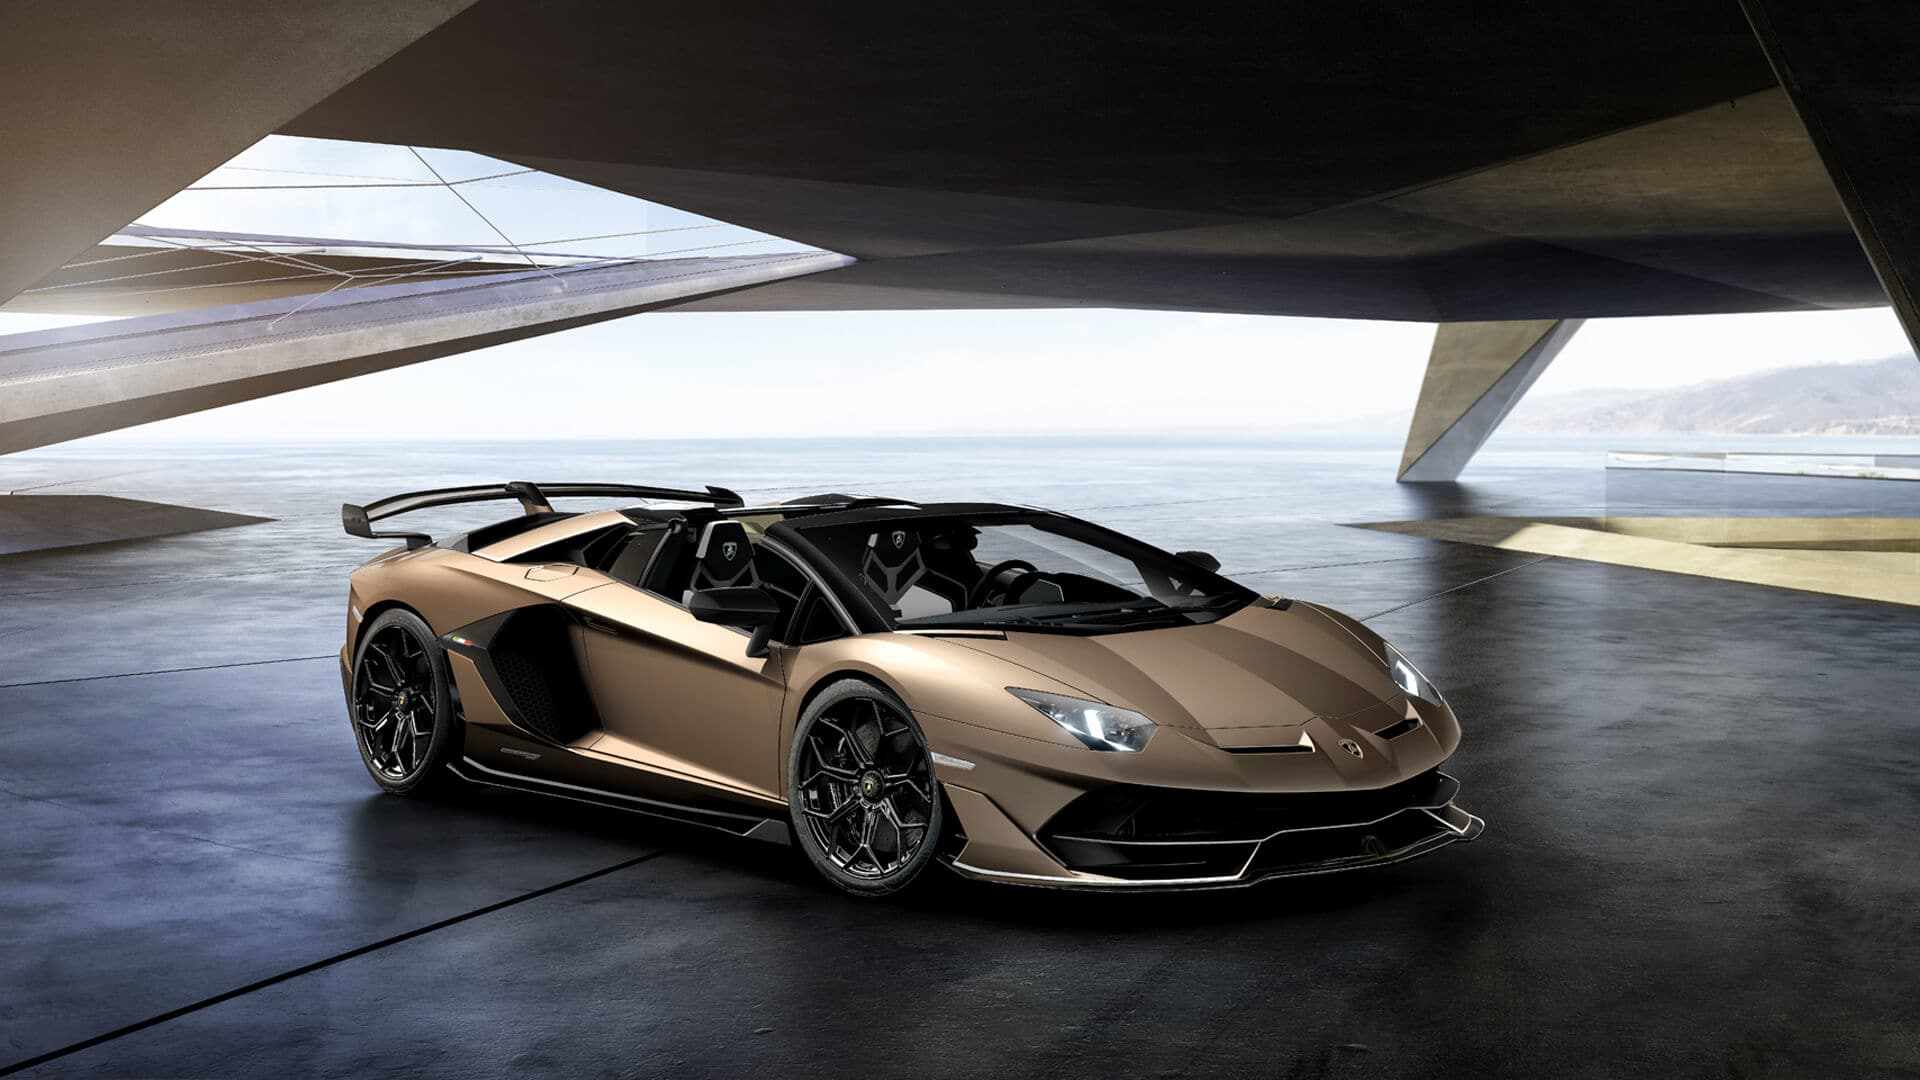 The Lamborghini Aventador Svj Roadster Brings Naturally Aspirated